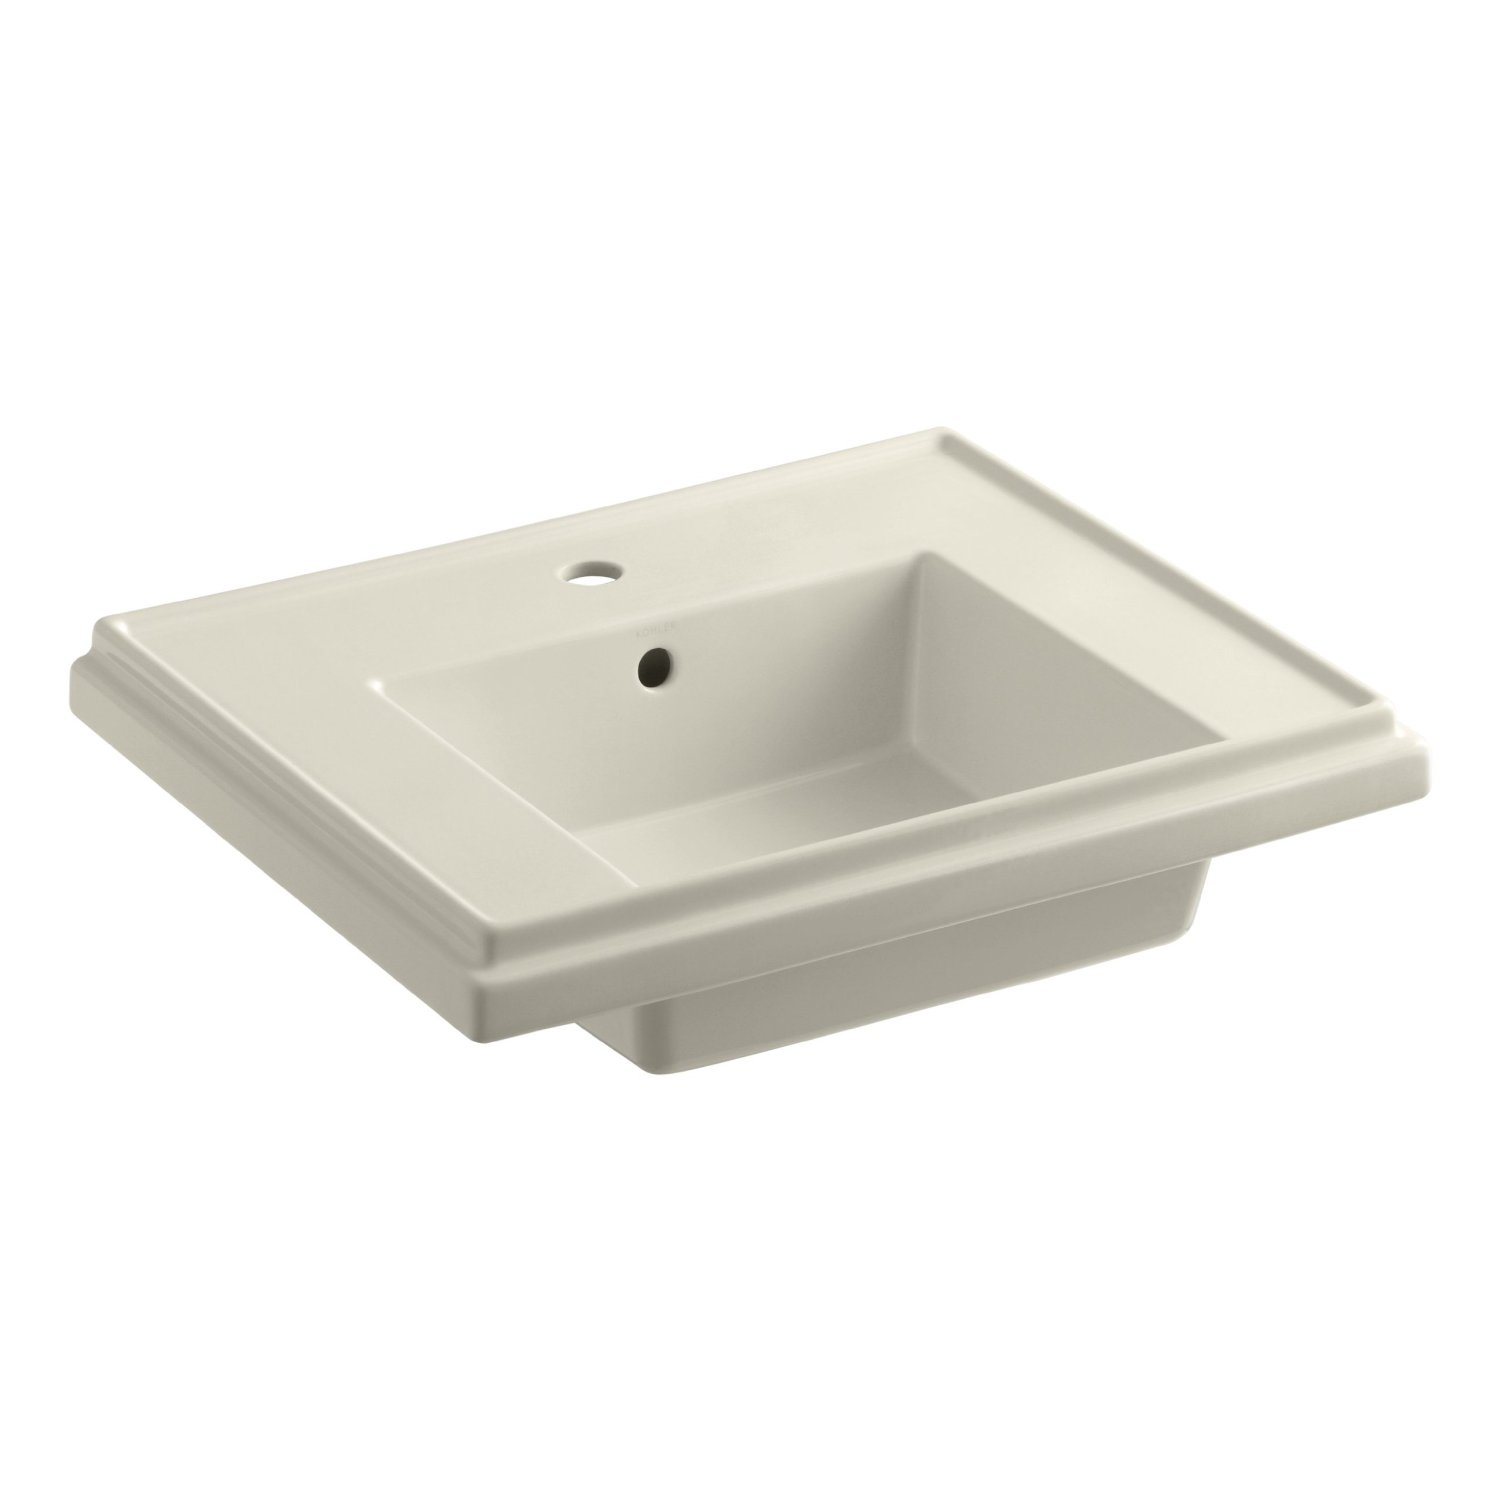 Kohlers Tresham K-2757-1-0 is available in 10 colors, including ...